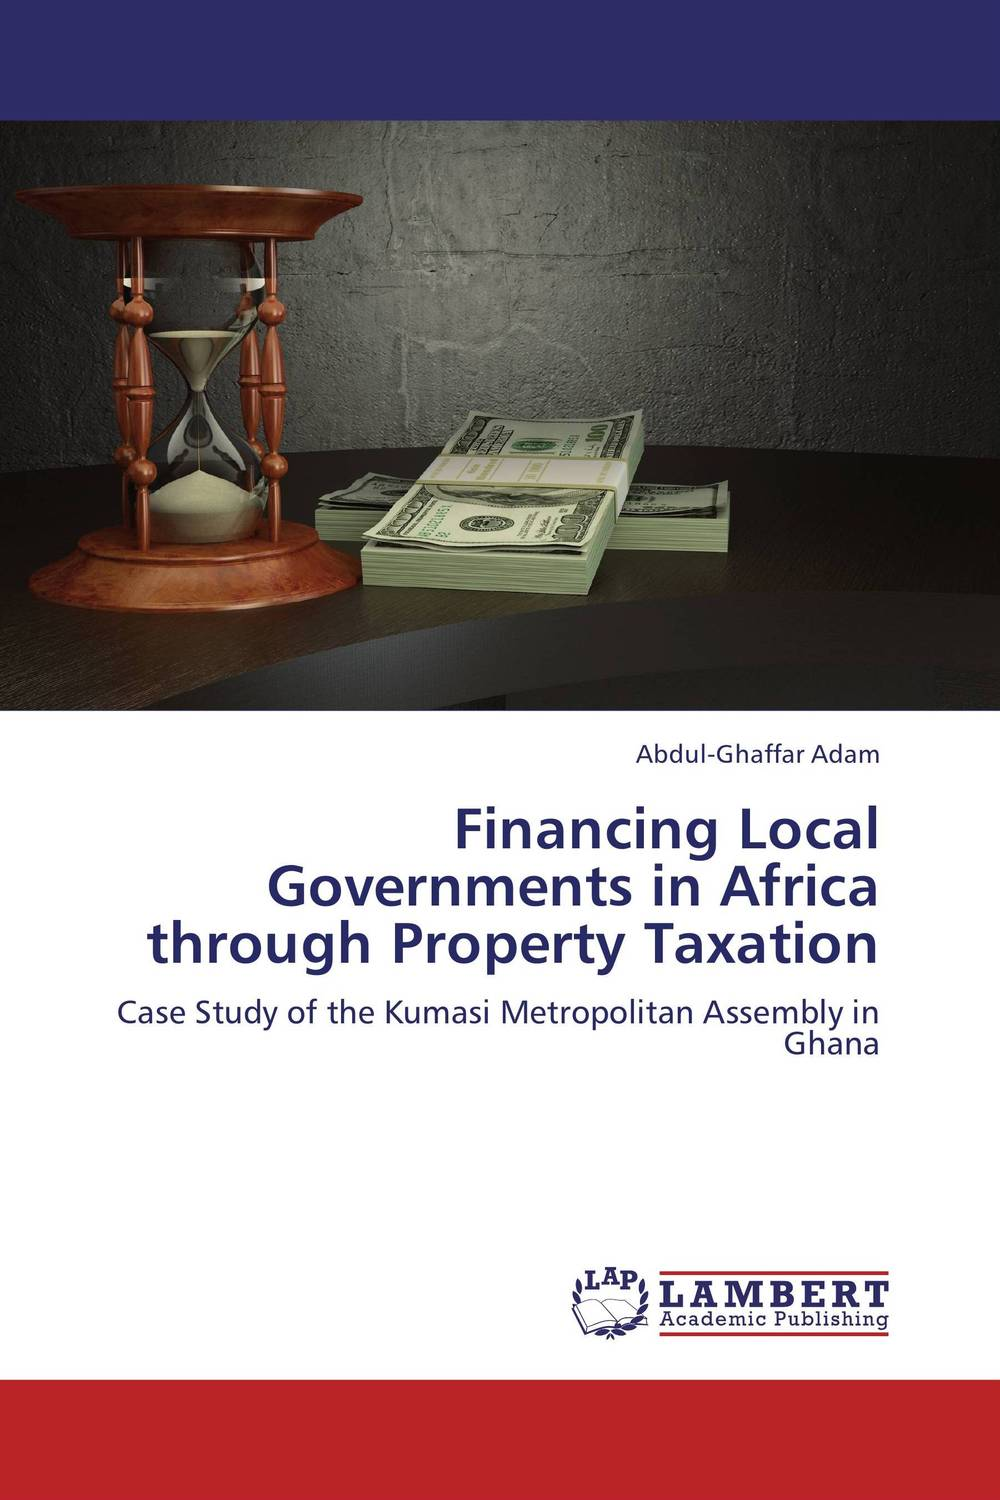 Financing Local Governments in Africa through Property Taxation